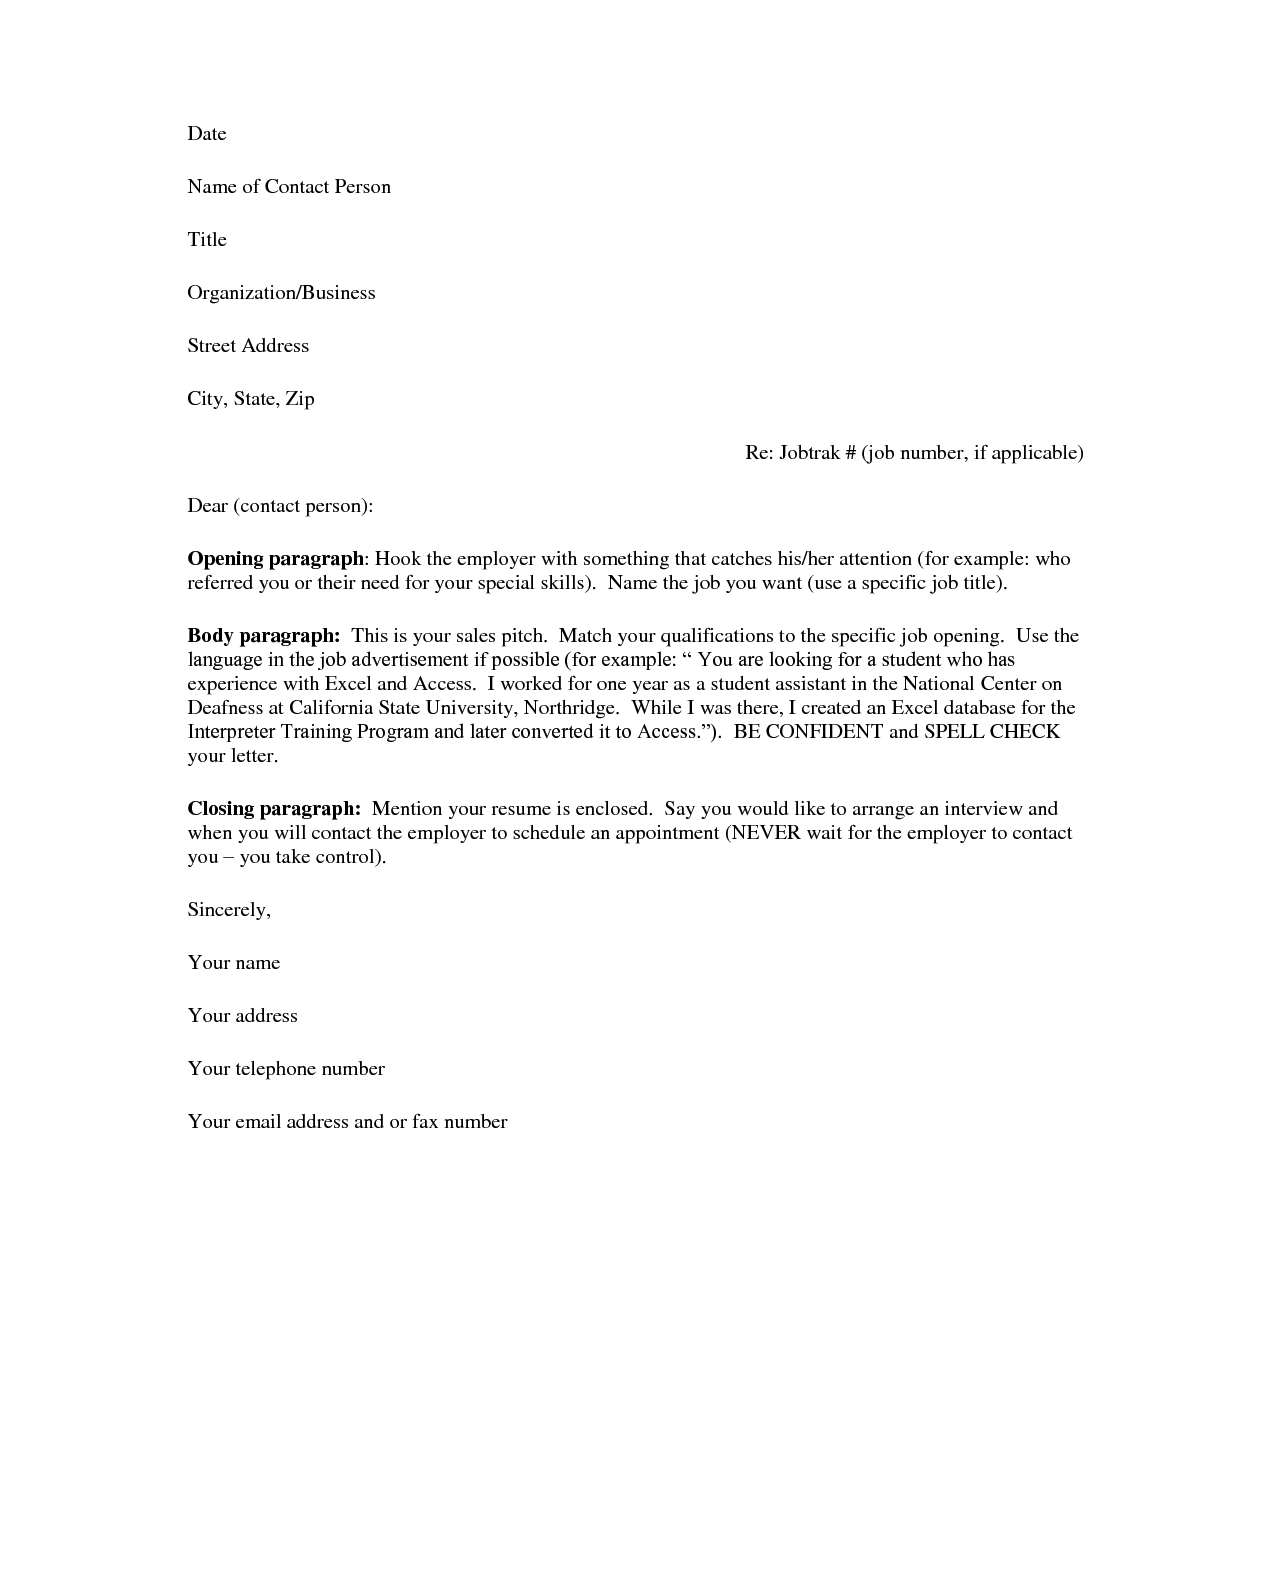 A Cover Letter For A Resume: Resume Example, Urban Pie Resume Cover Letter Example